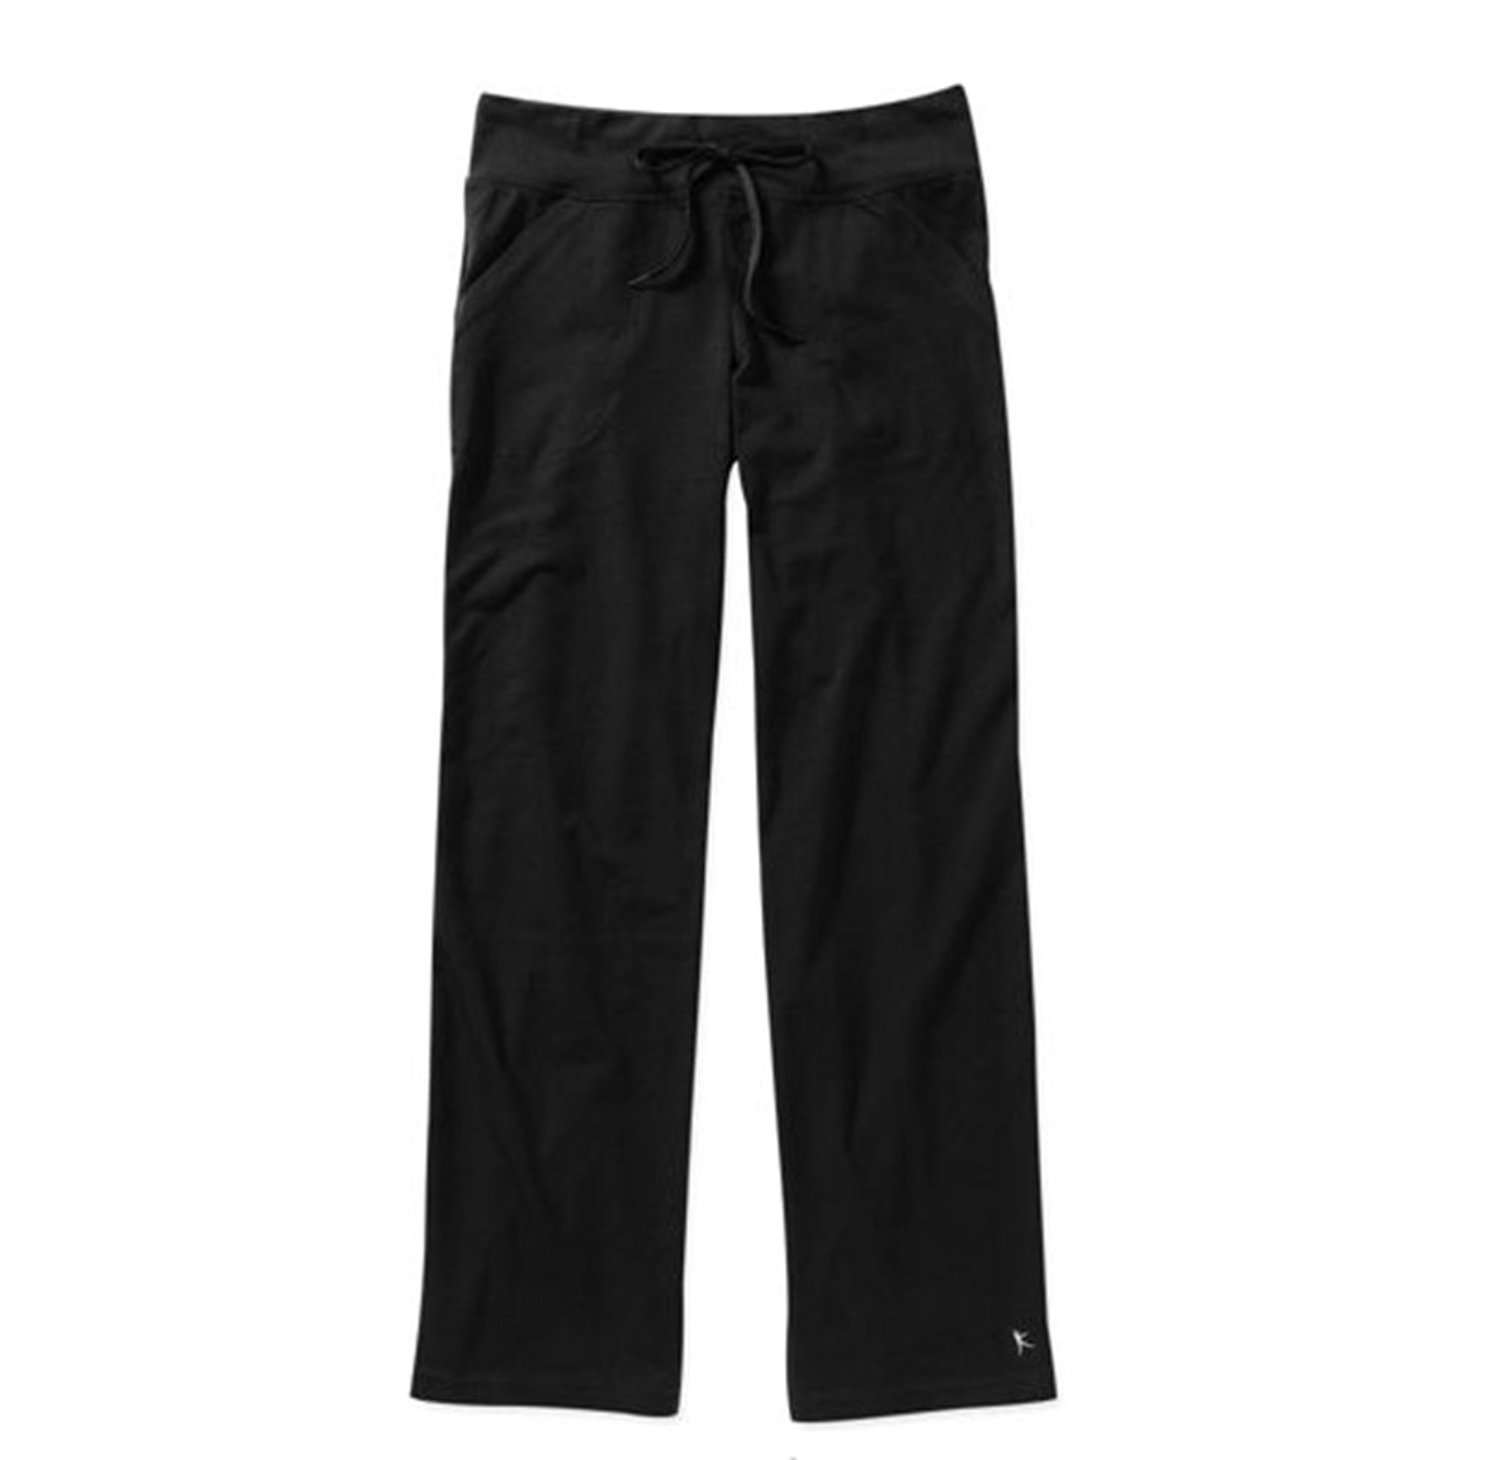 91a9bfec92d150 Get Quotations · Danskin Now Women's Dri More Relaxed Pants, Petite - Yoga,  Fitness, Active wear